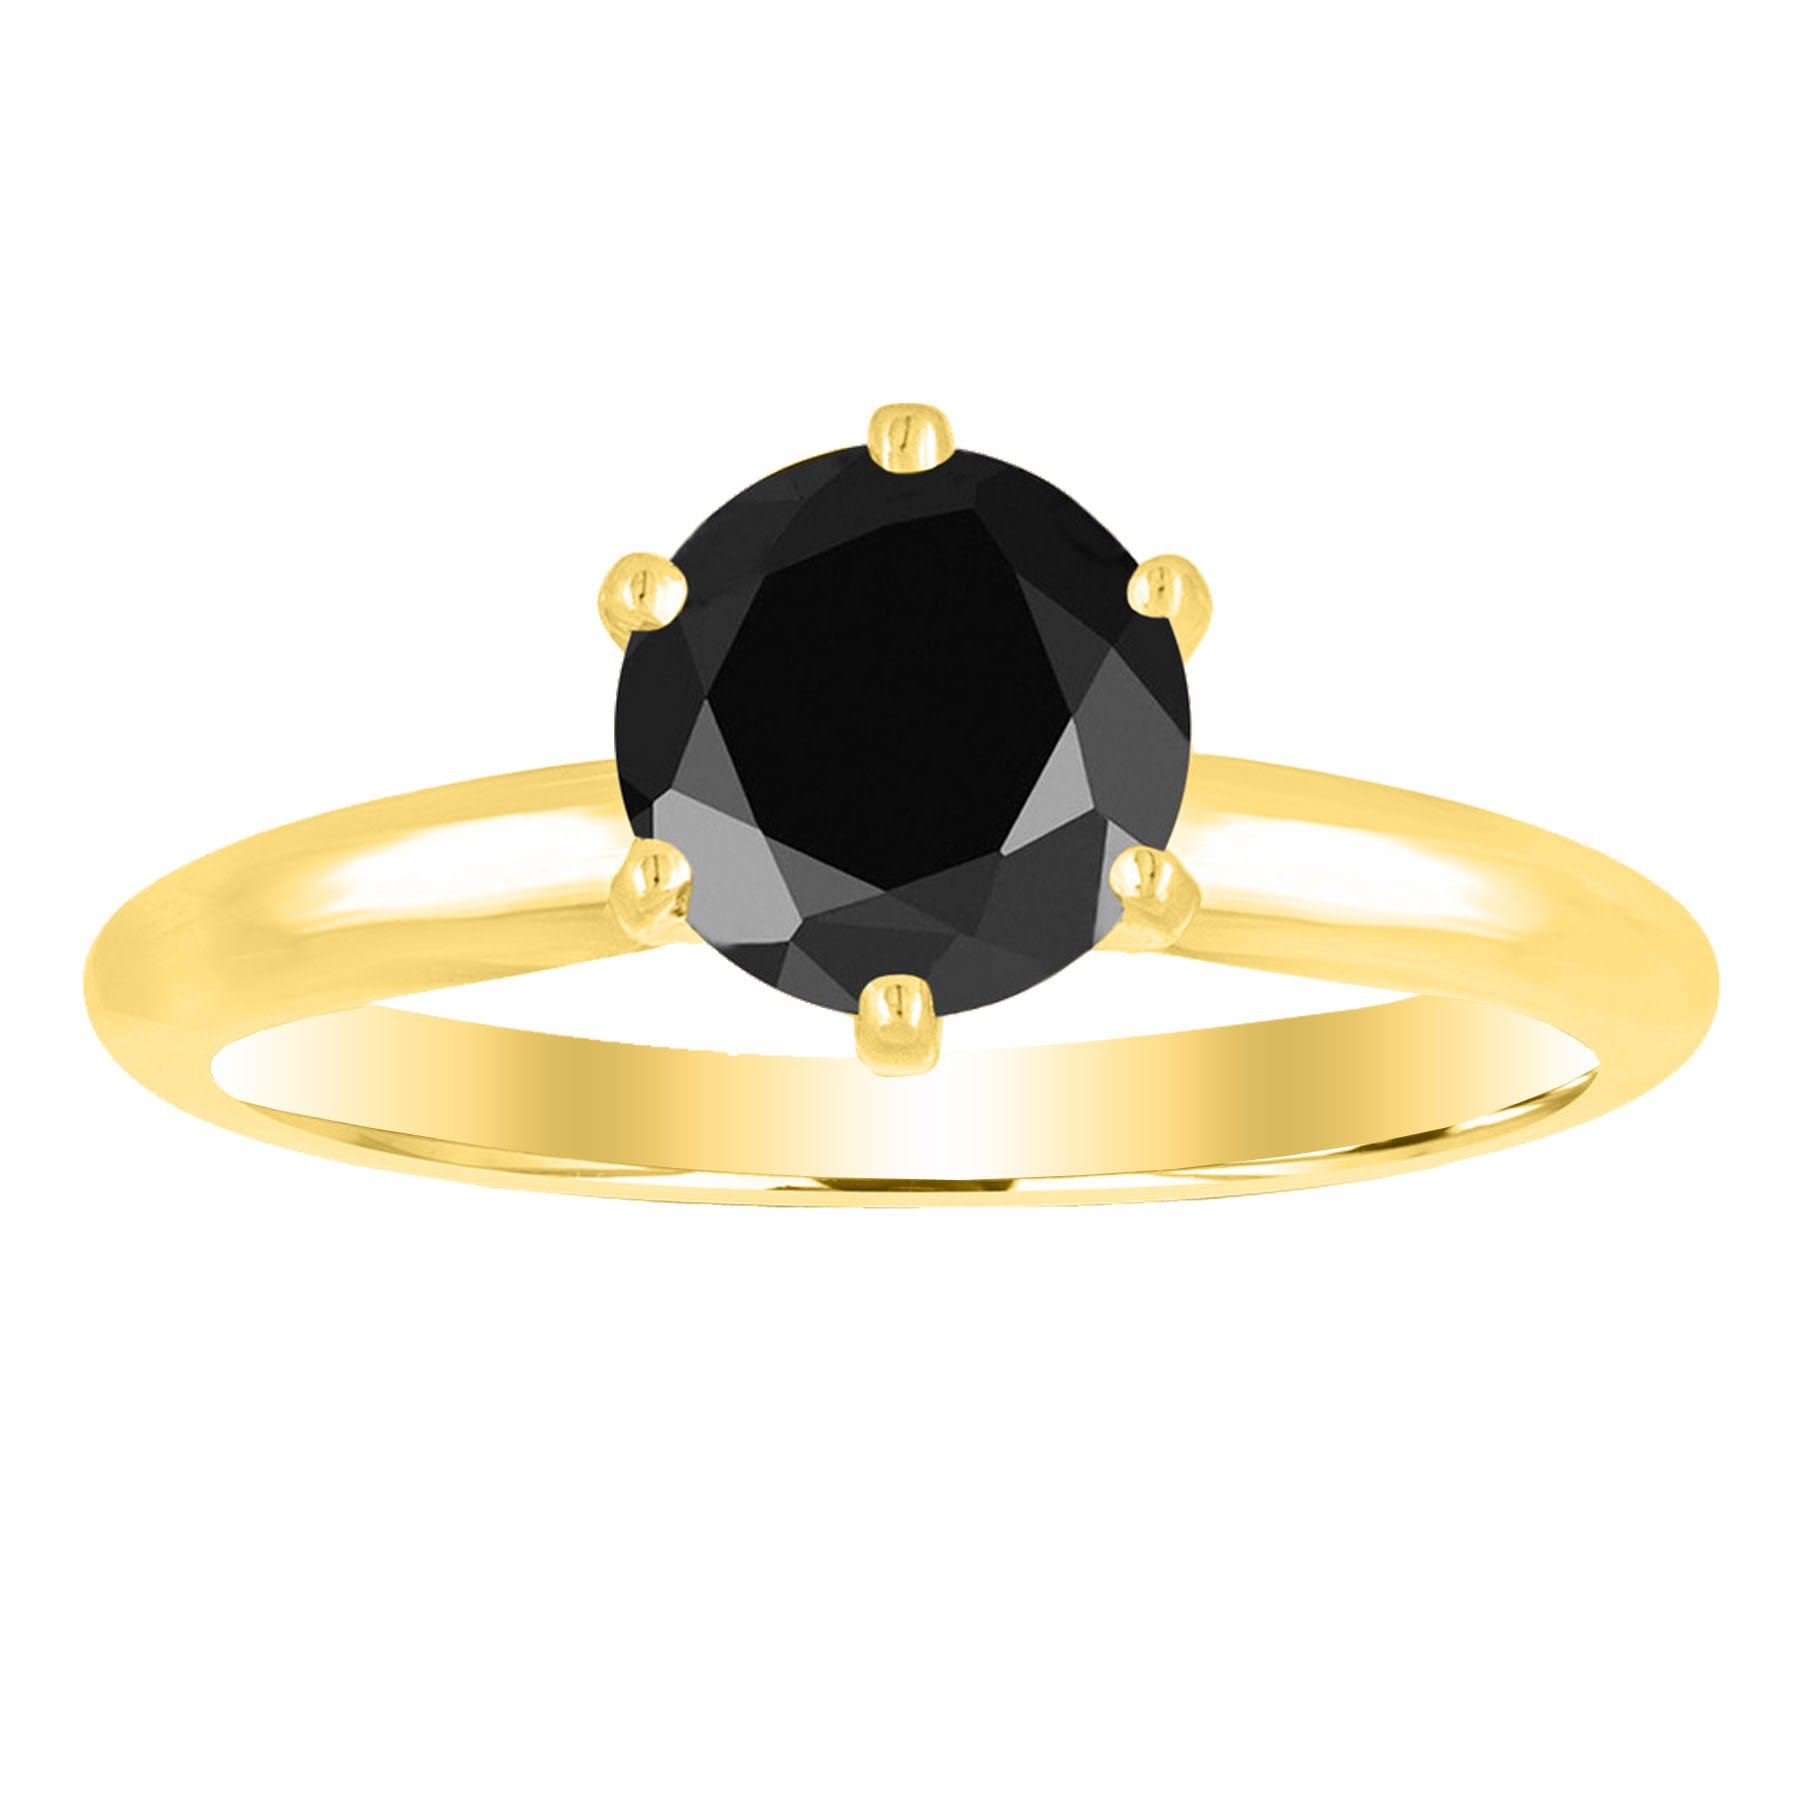 1 1/2 1.5 Carat 14K Yellow Gold Round Black Diamond Solitaire Ring (AAA Quality) by Houston Diamond District